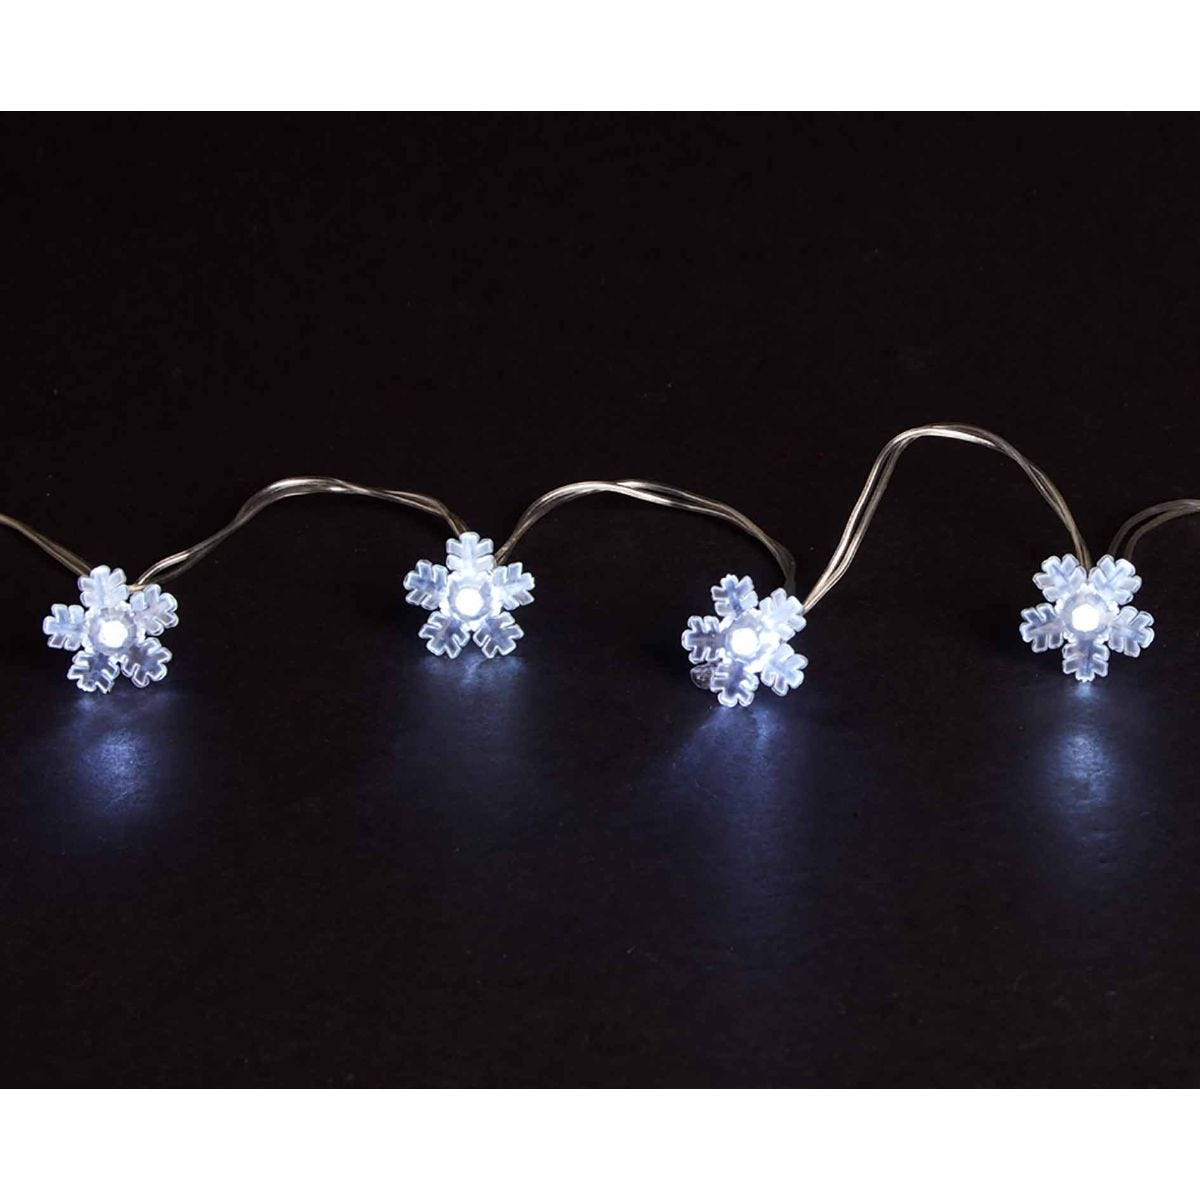 Compare prices for 20 LED String Lights Battery Operated Snowflake Ice White, White